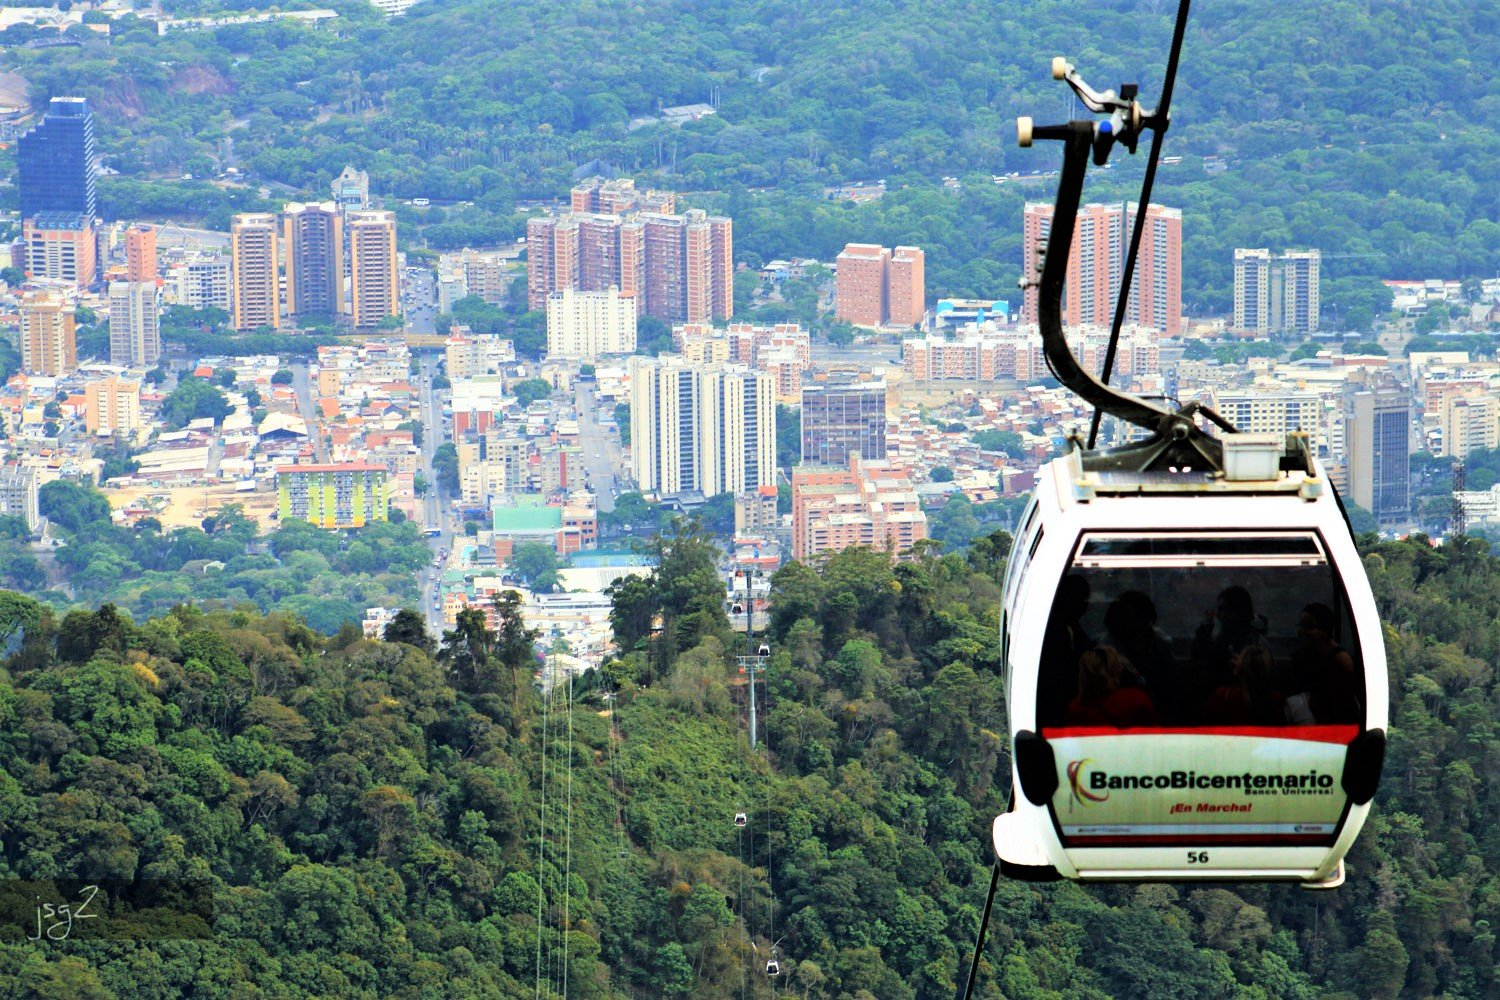 How to take a ride over the cite in a cable way cabin in Caracas